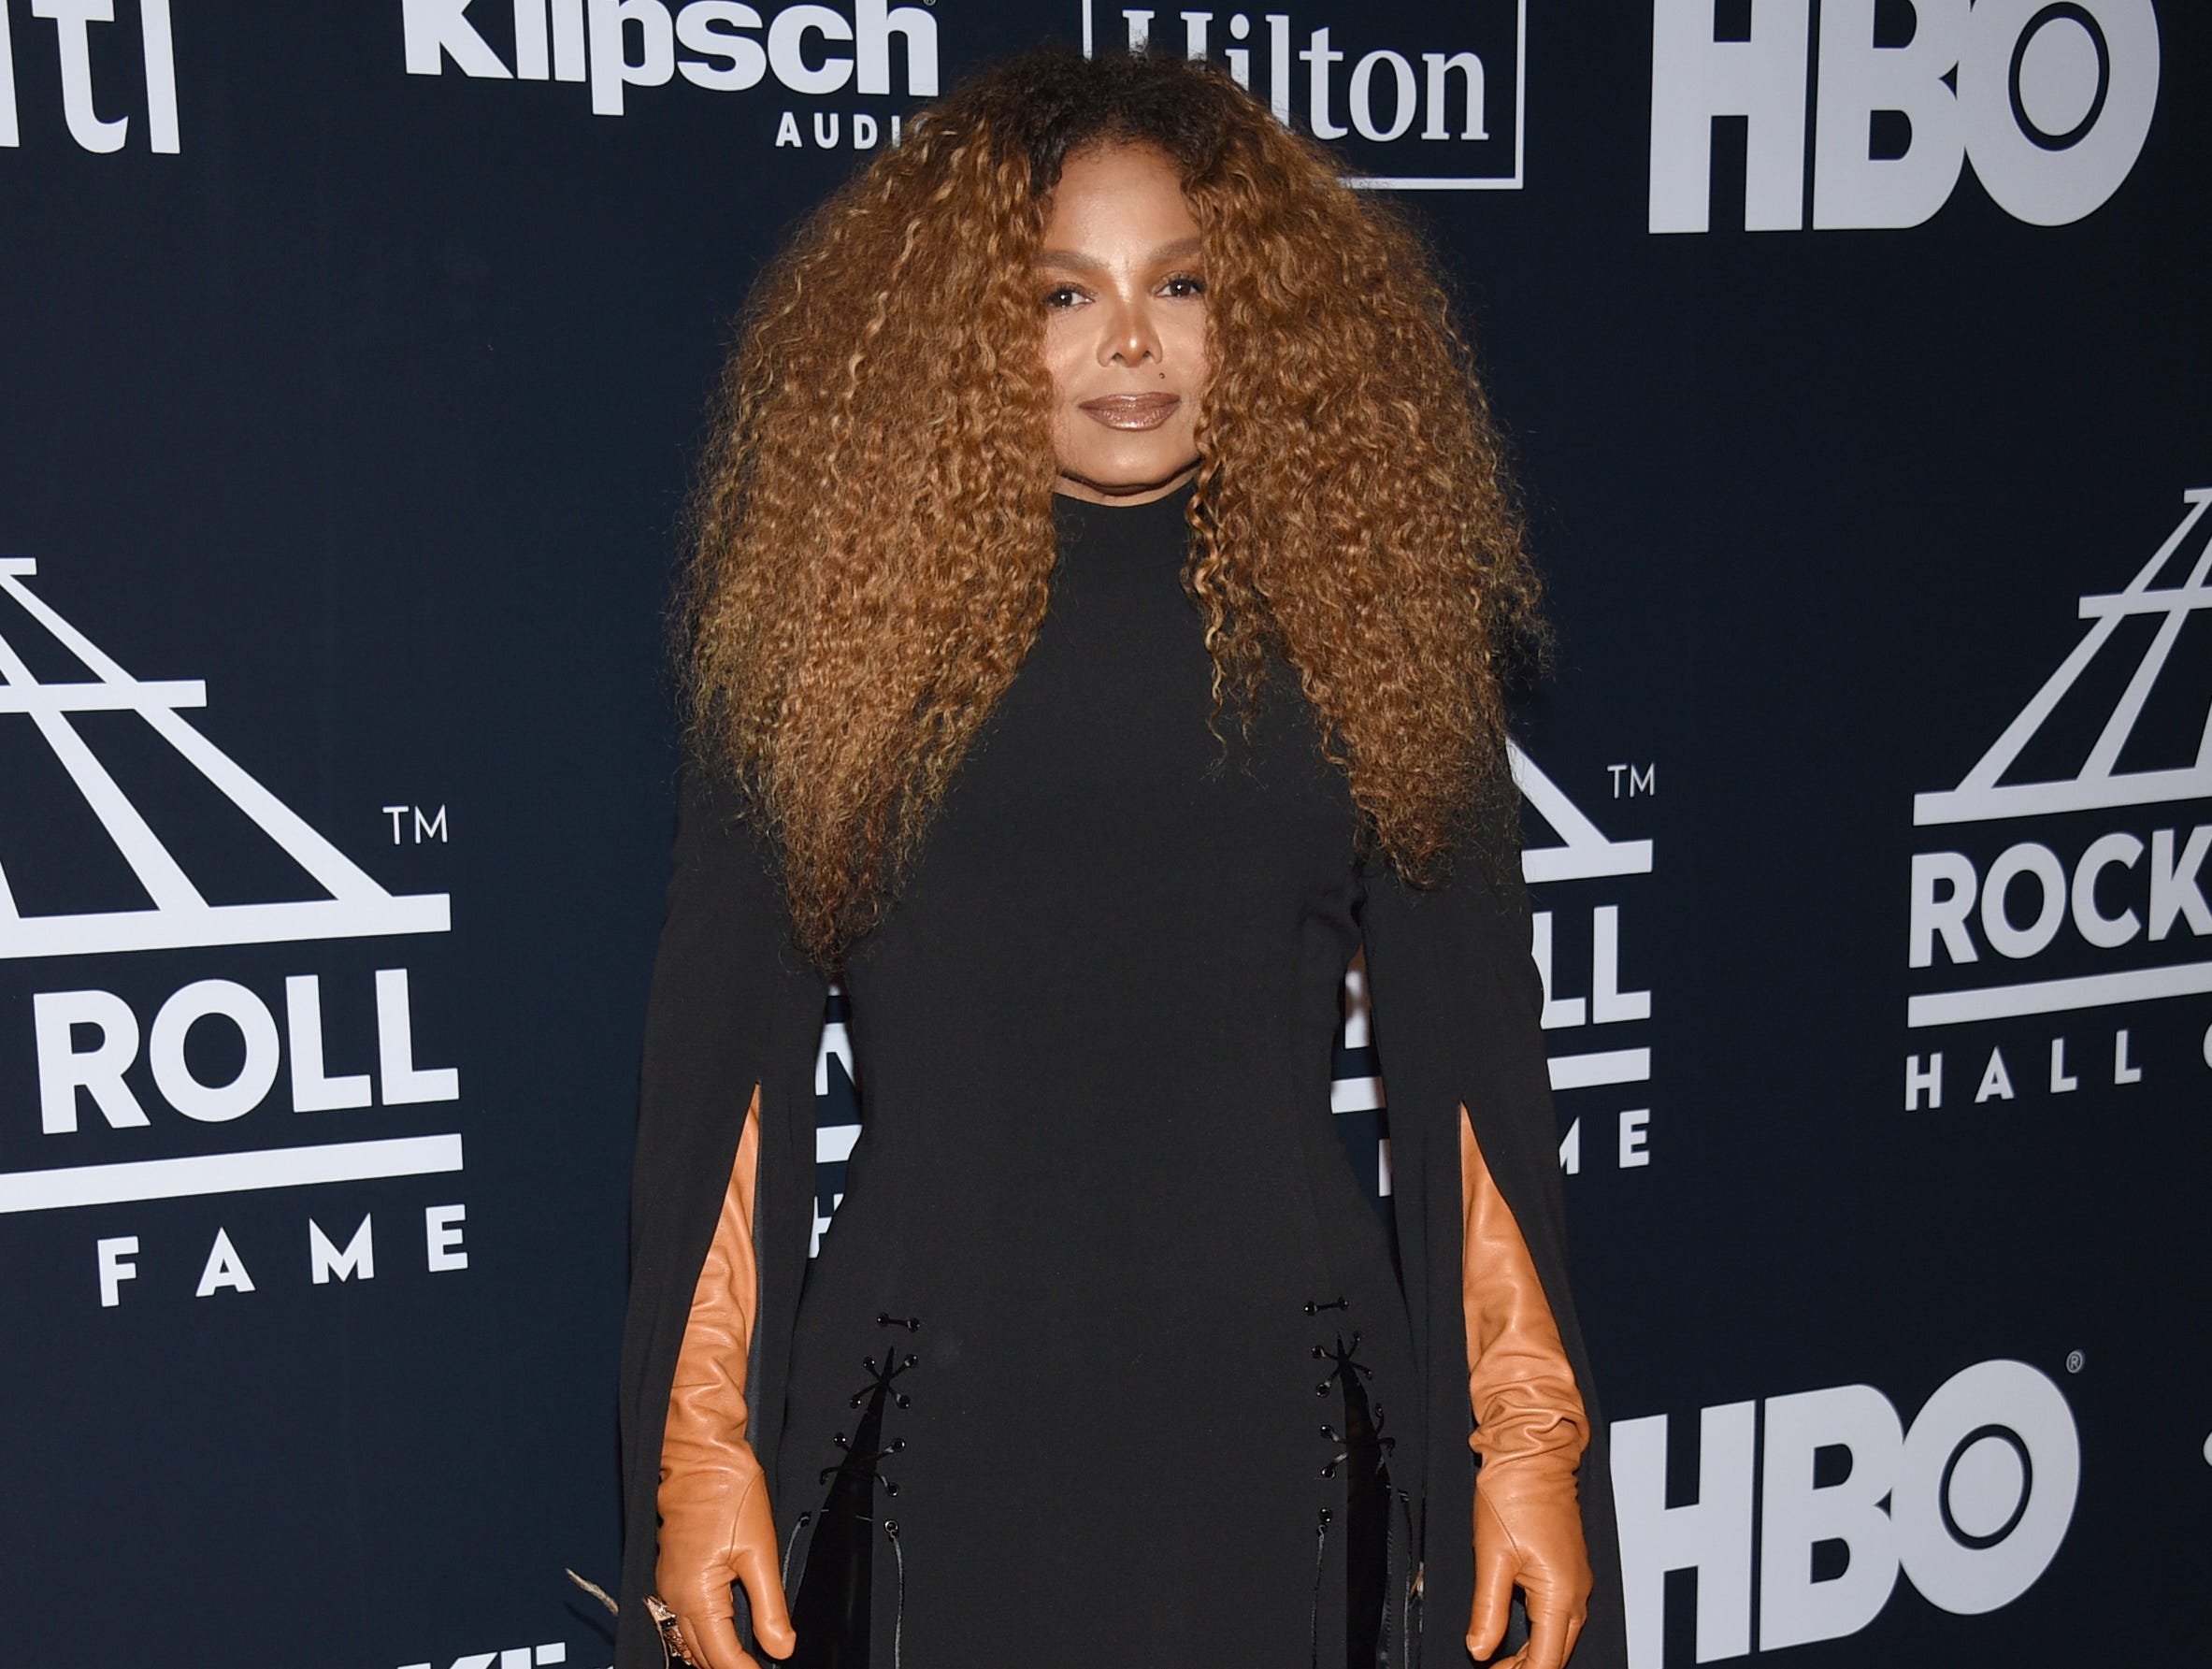 Janet Jackson arrives at the Rock & Roll Hall of Fame induction ceremony at the Barclays Center on Friday, March 29, 2019, in New York. (Photo by Evan Agostini/Invision/AP) ORG XMIT: NYPM131